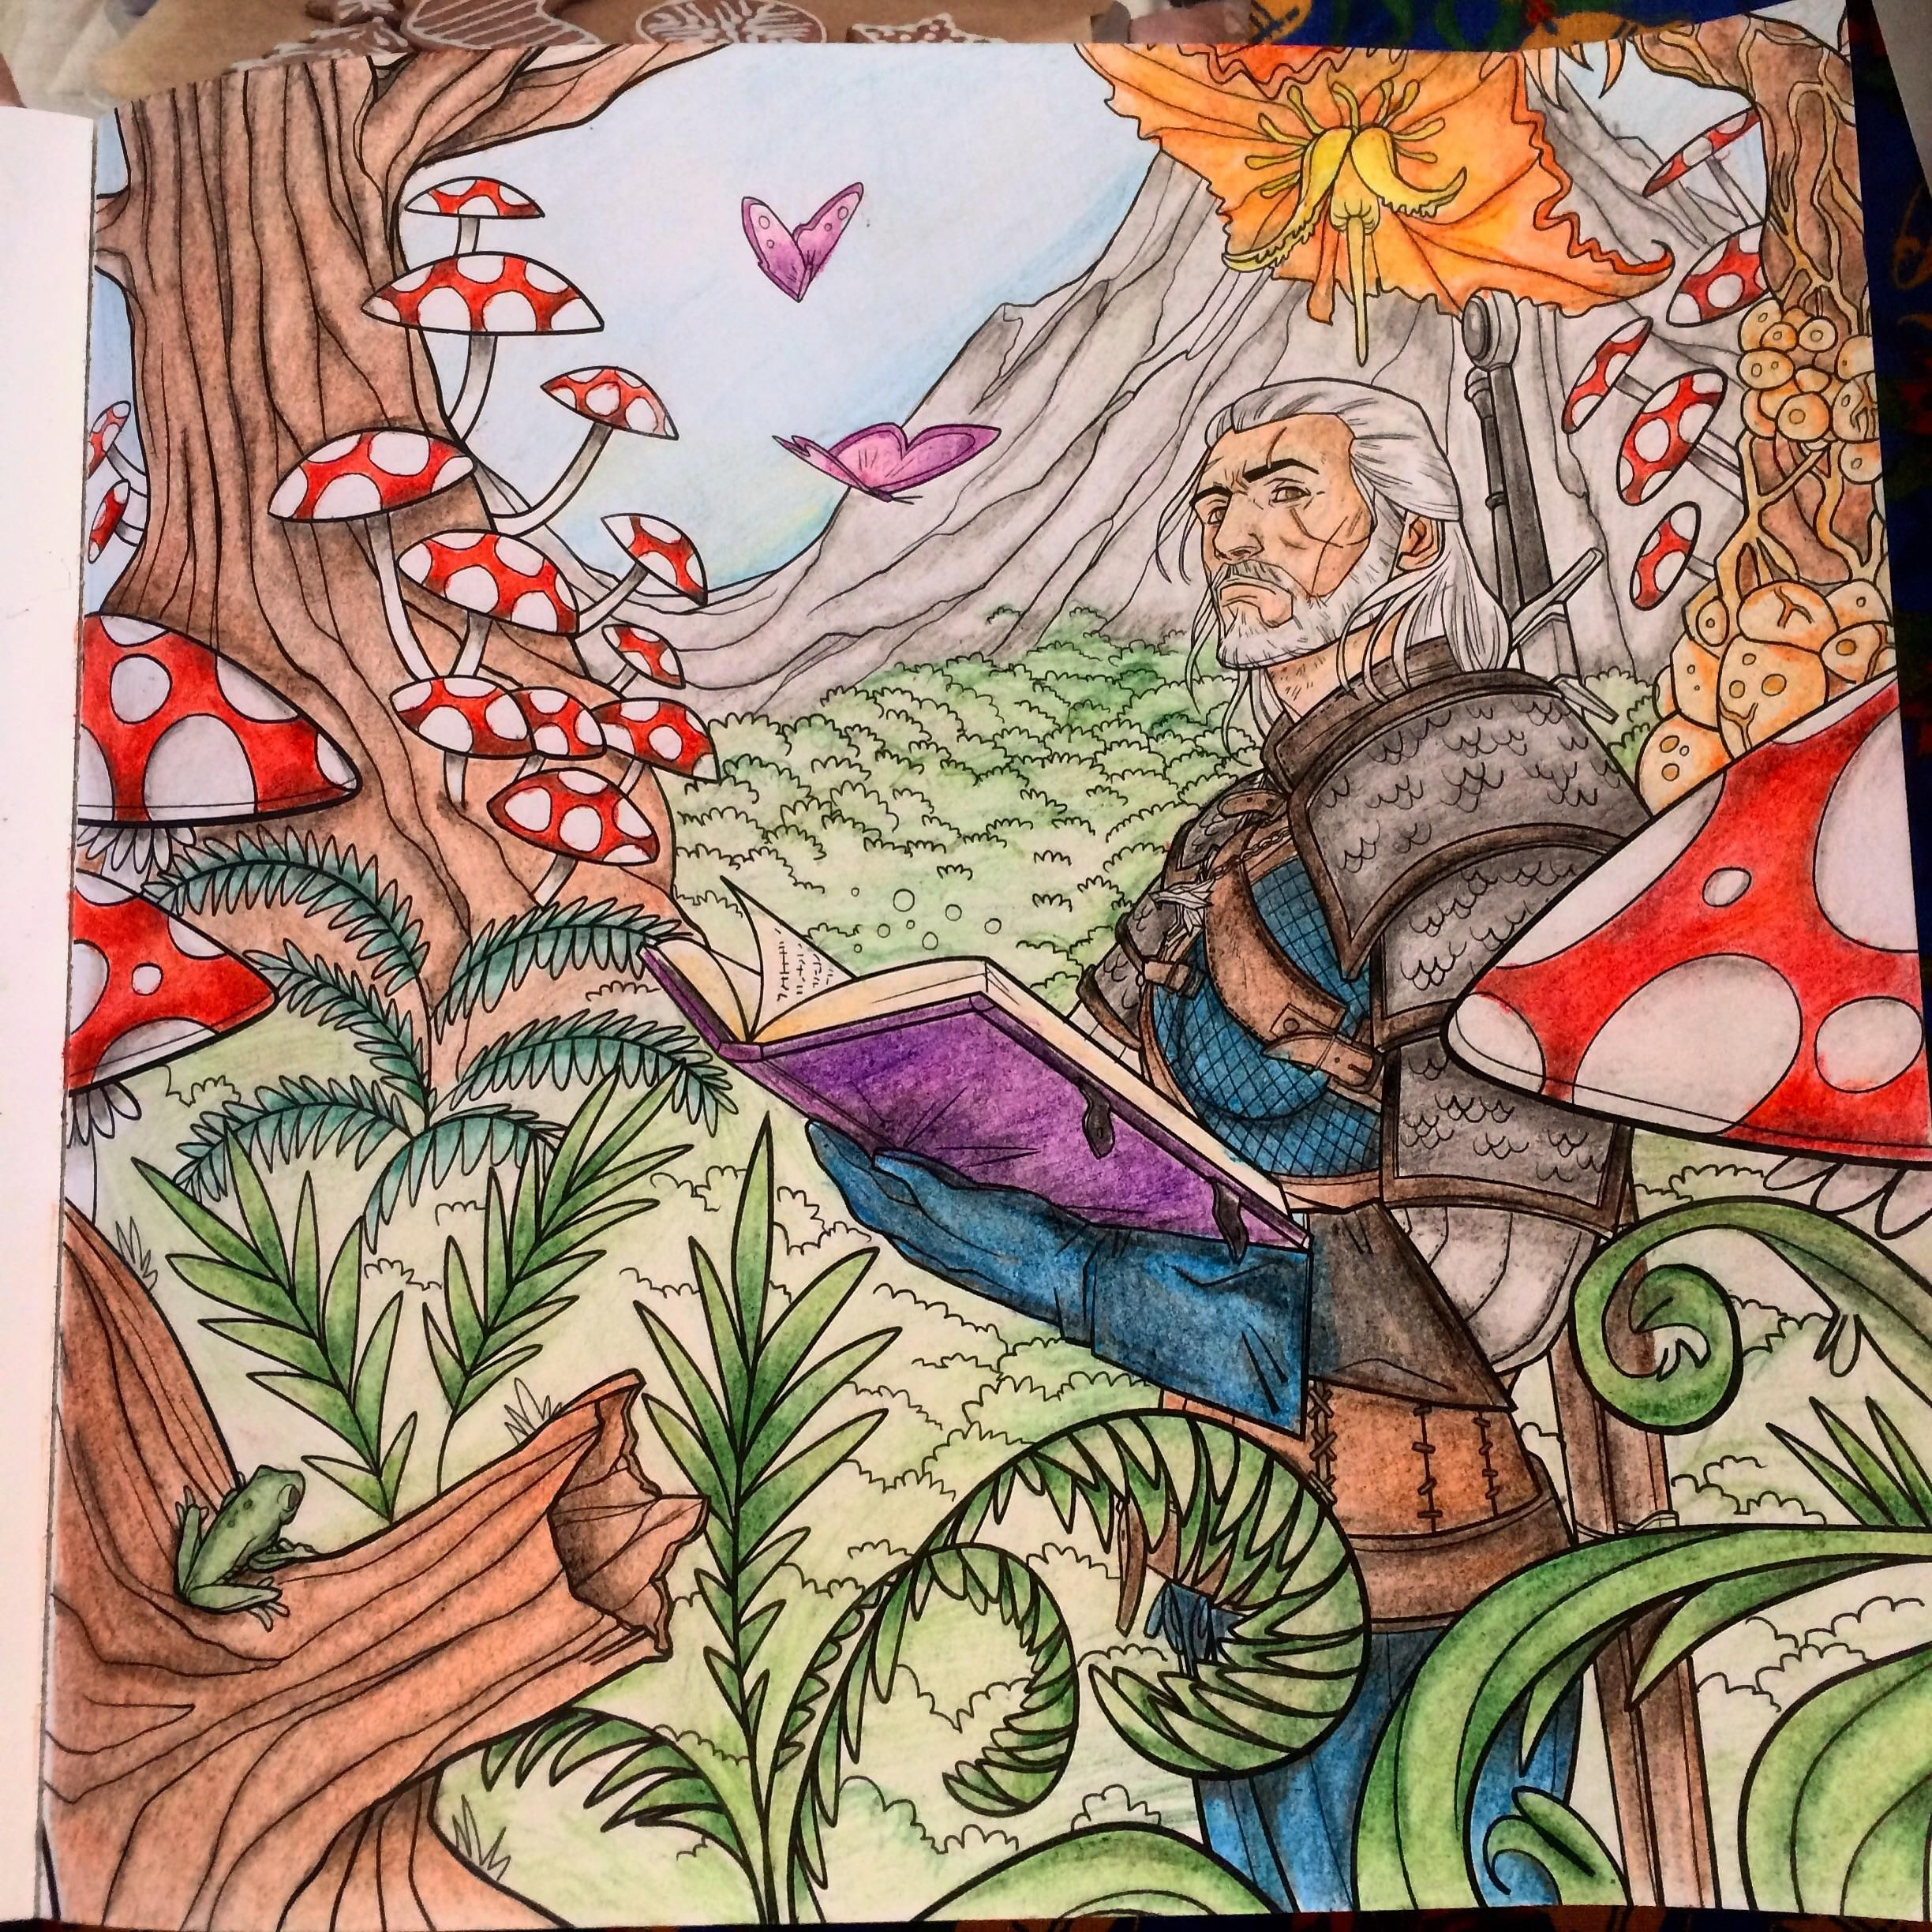 Got the Witcher coloring book from my boyfriend as a